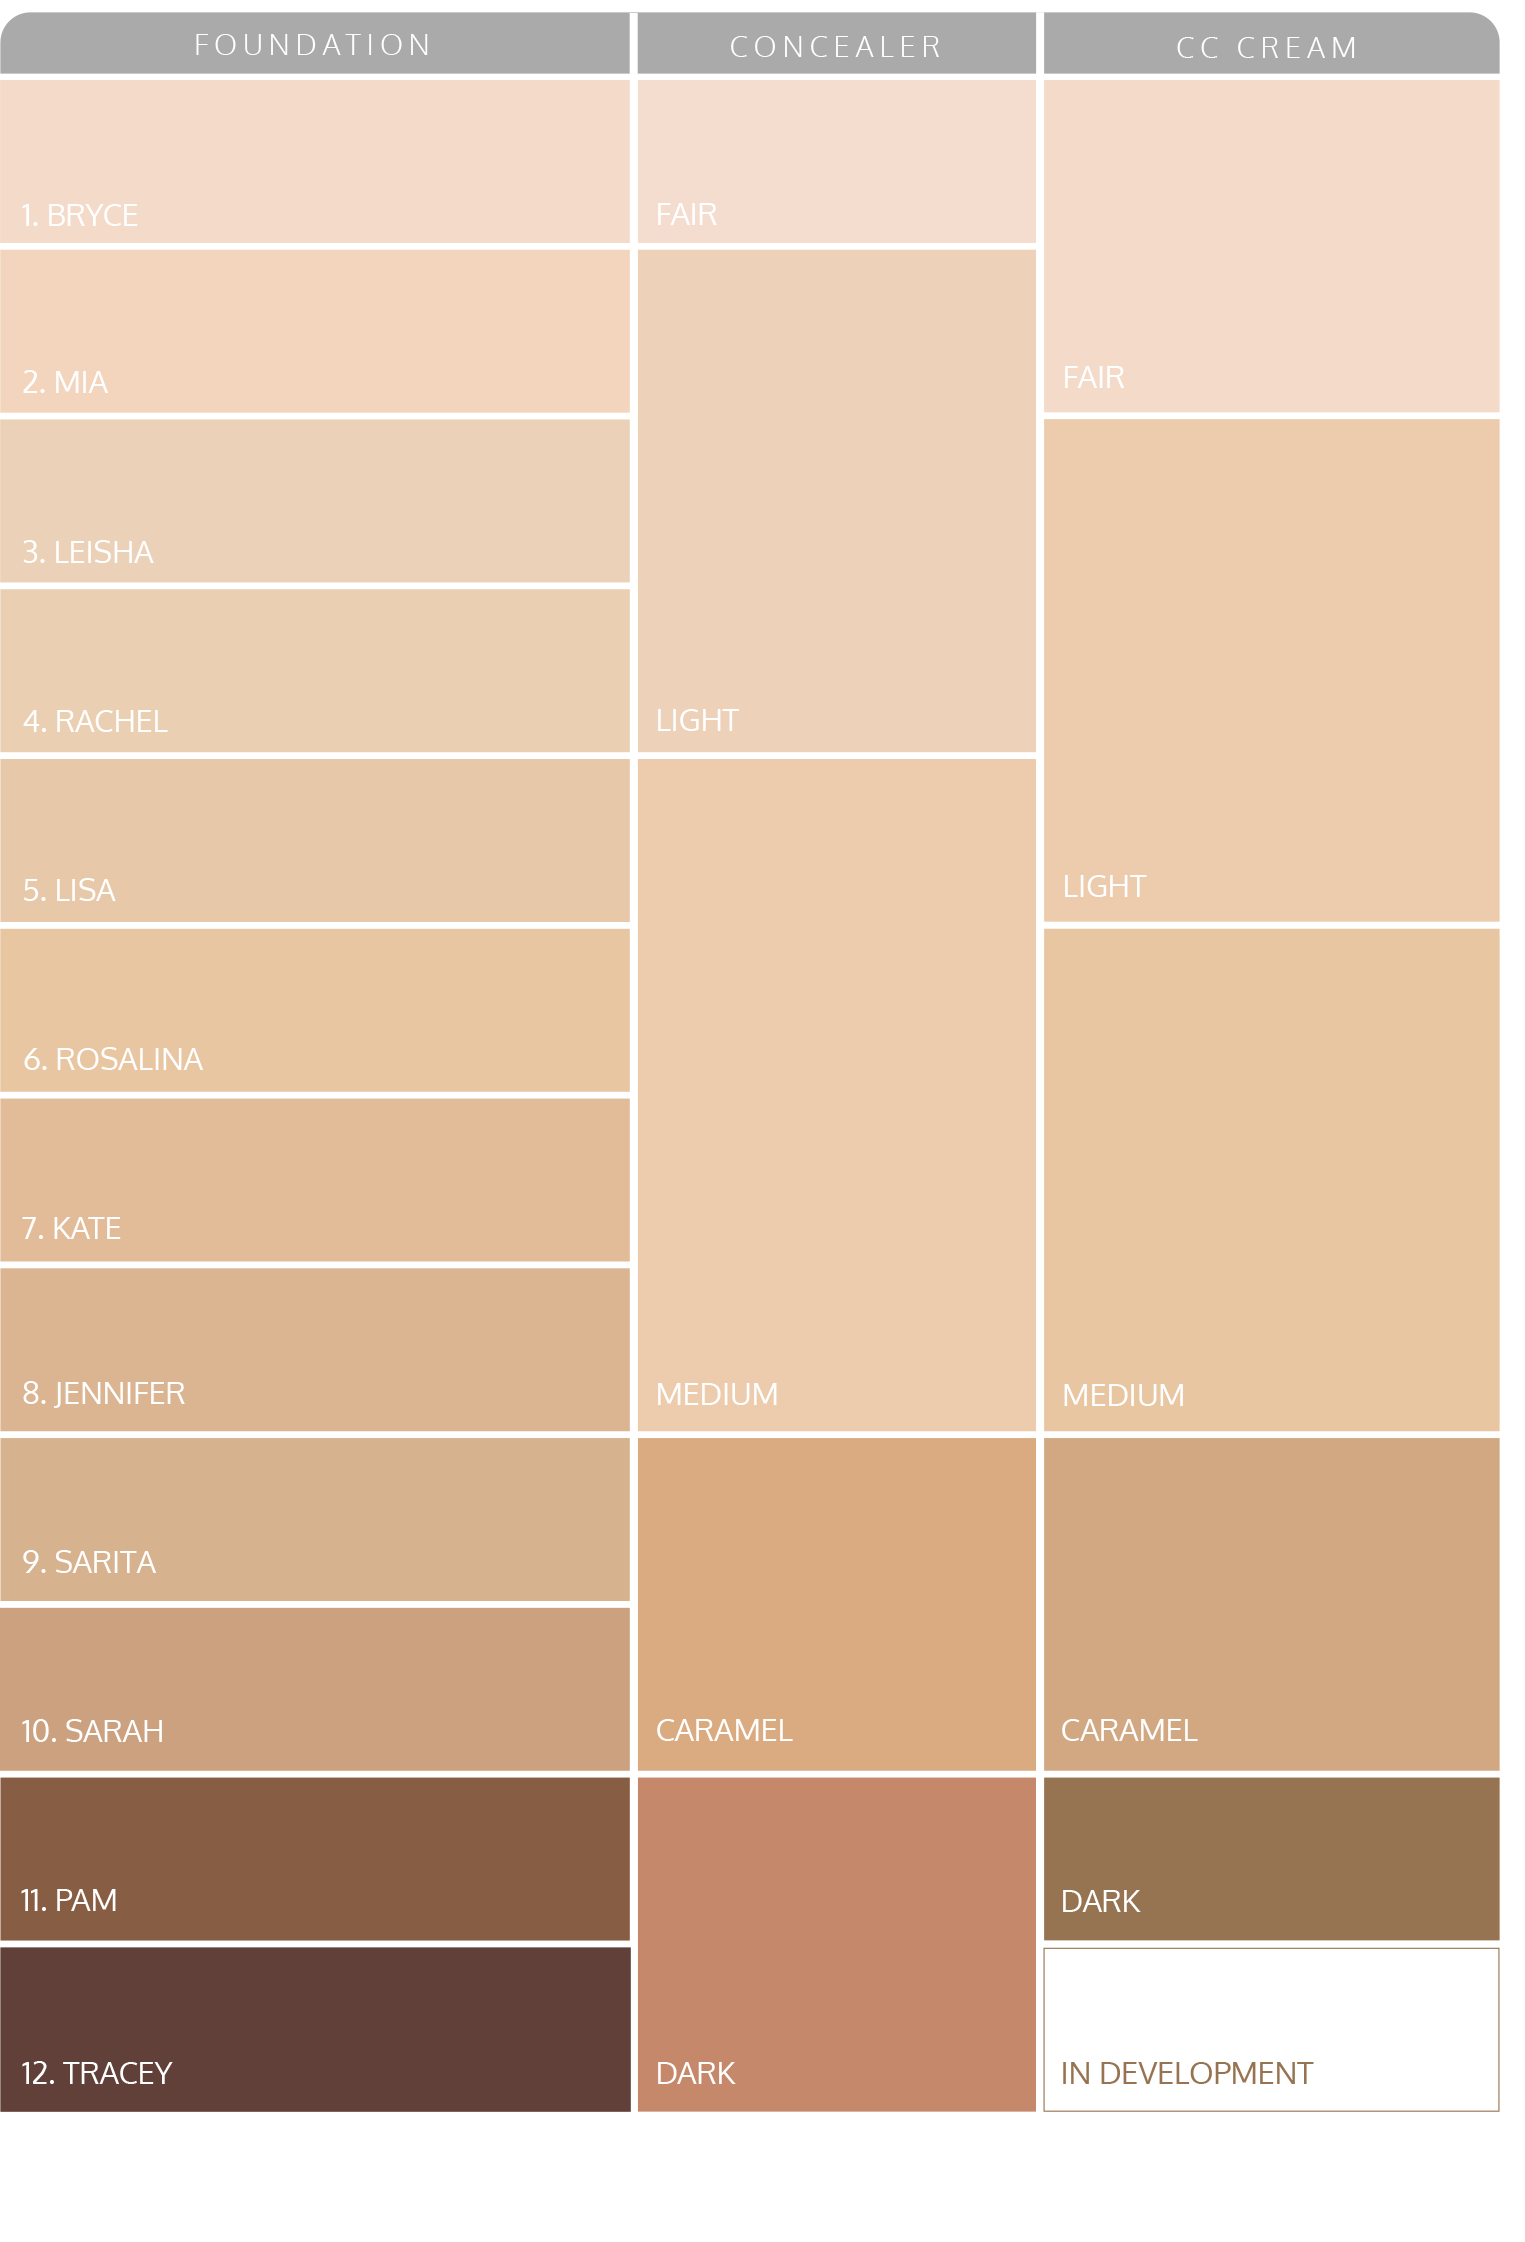 ... the middle has corresponding Concealer colours and the right hand side  shows the range of CC Cream tones. Click on the chart for a clear view!